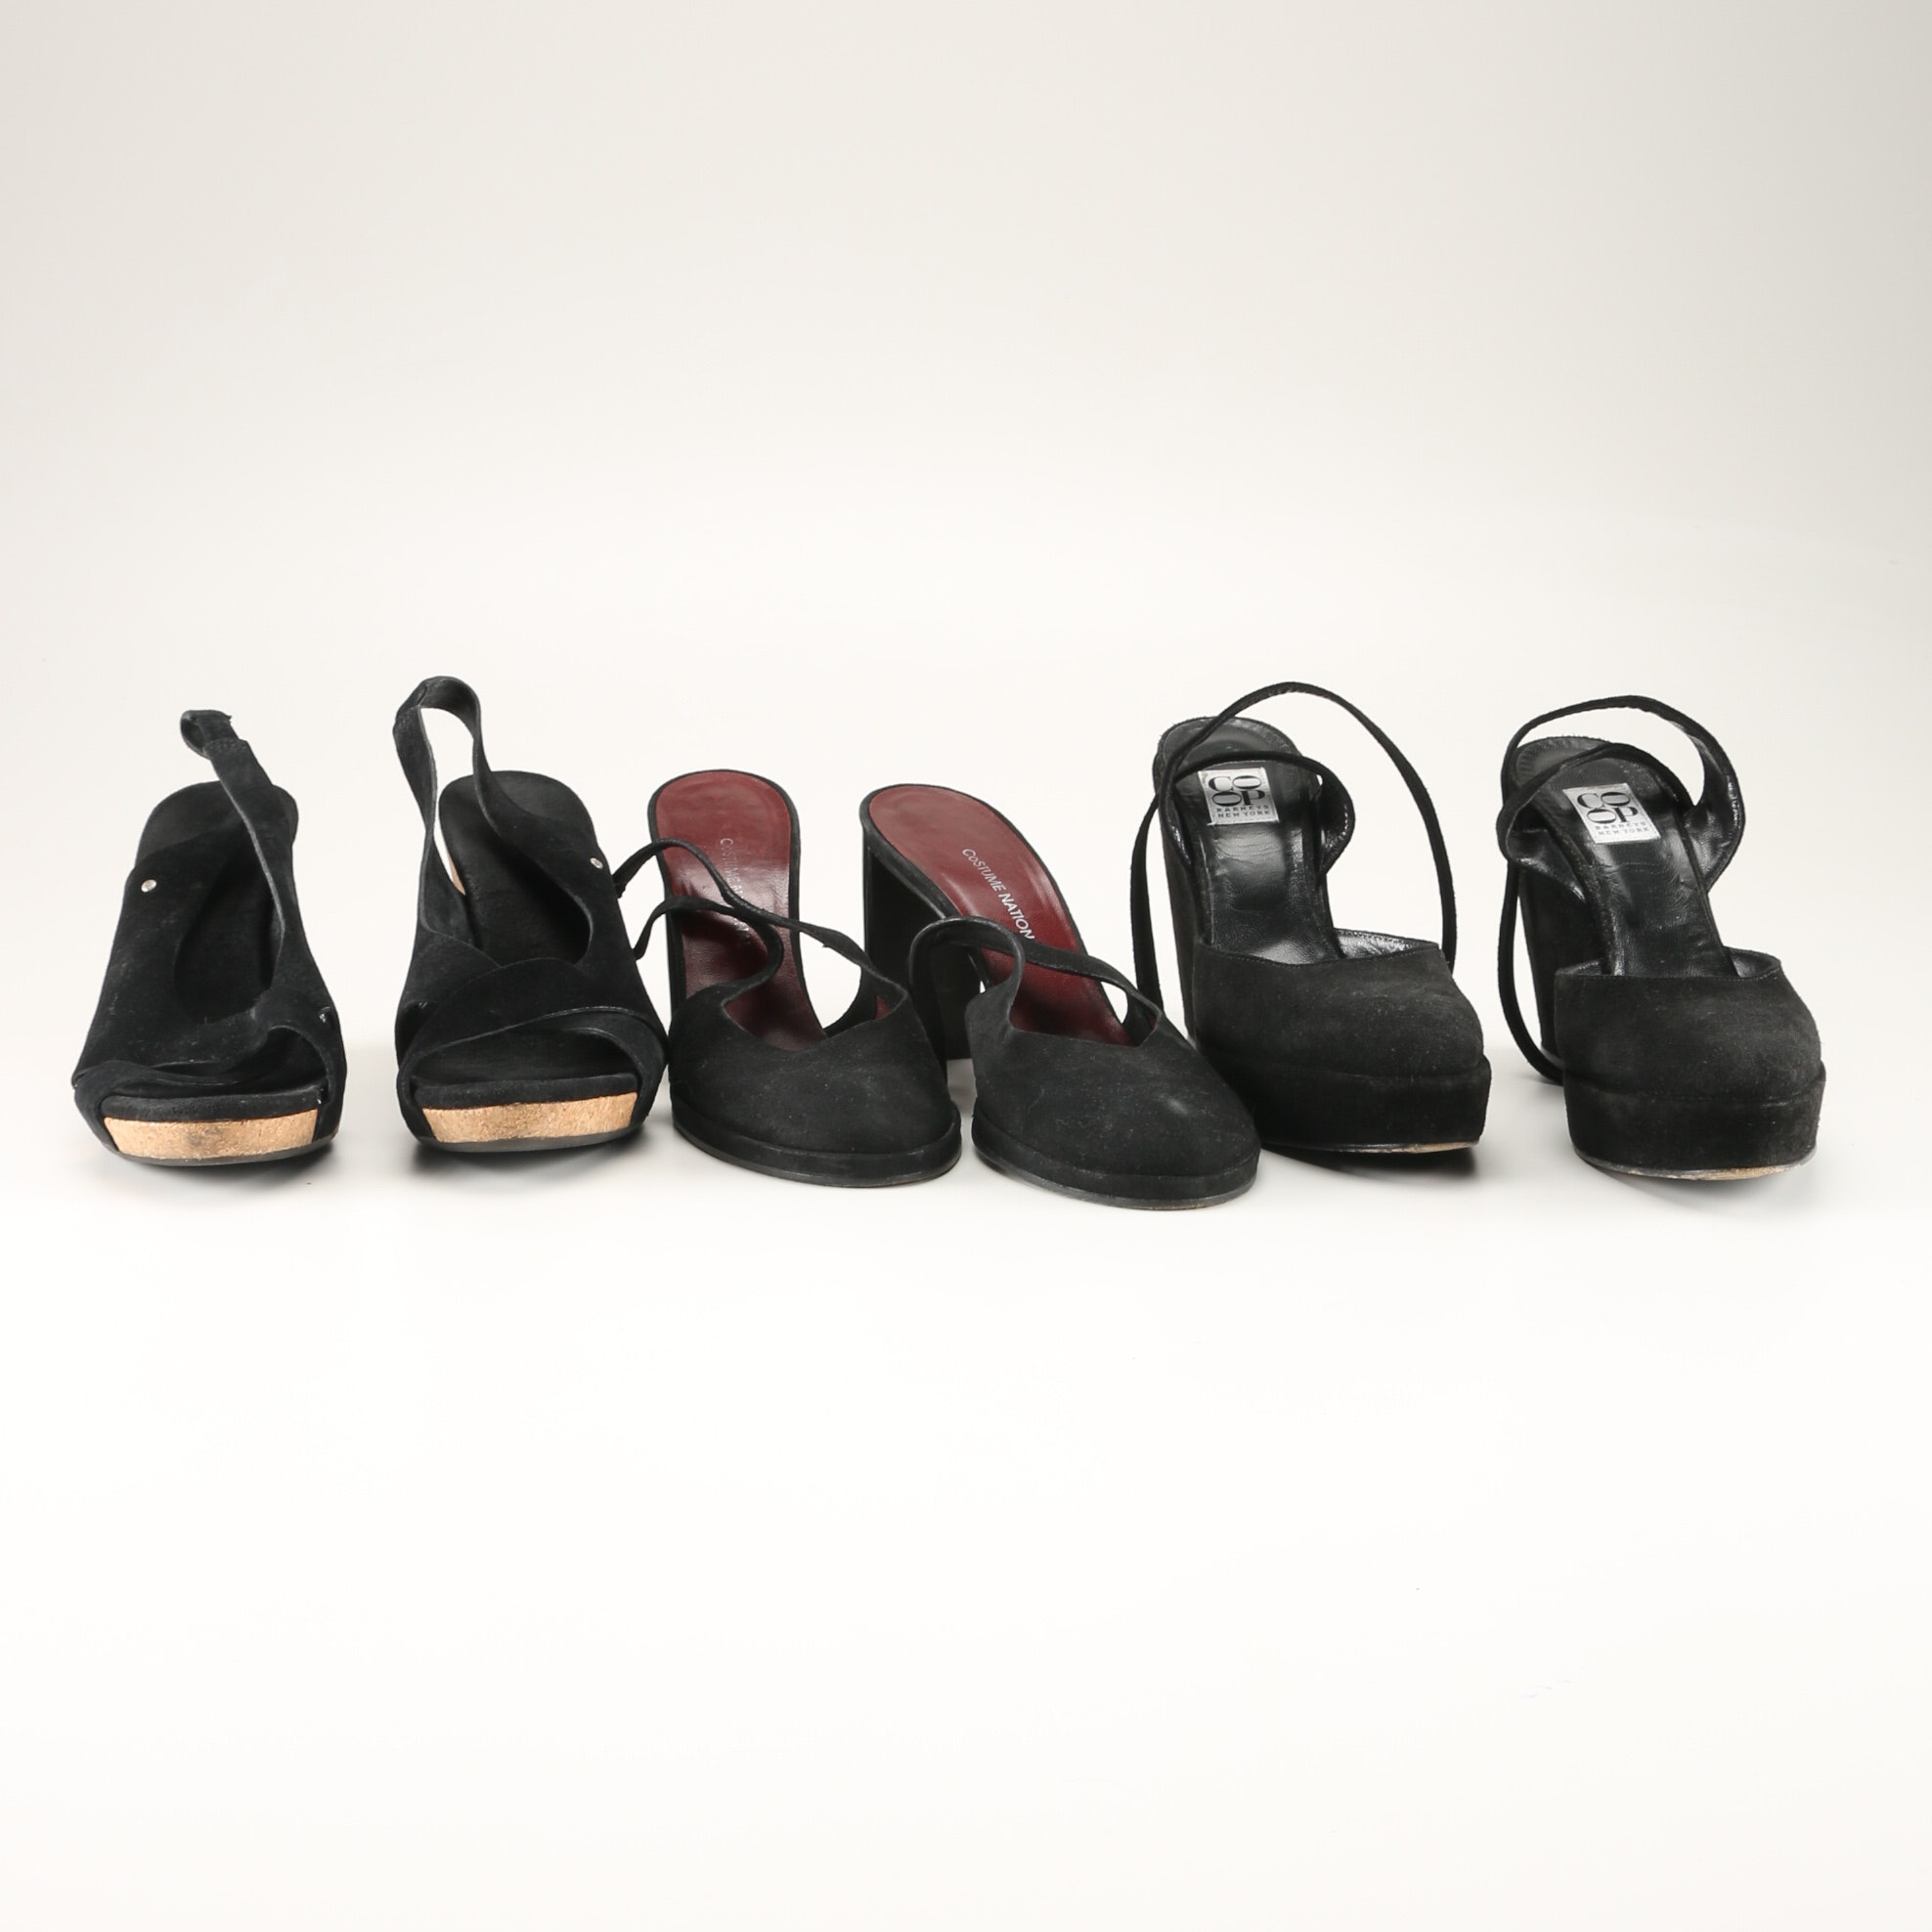 Assortment of Women's Dress Shoes with Ugg